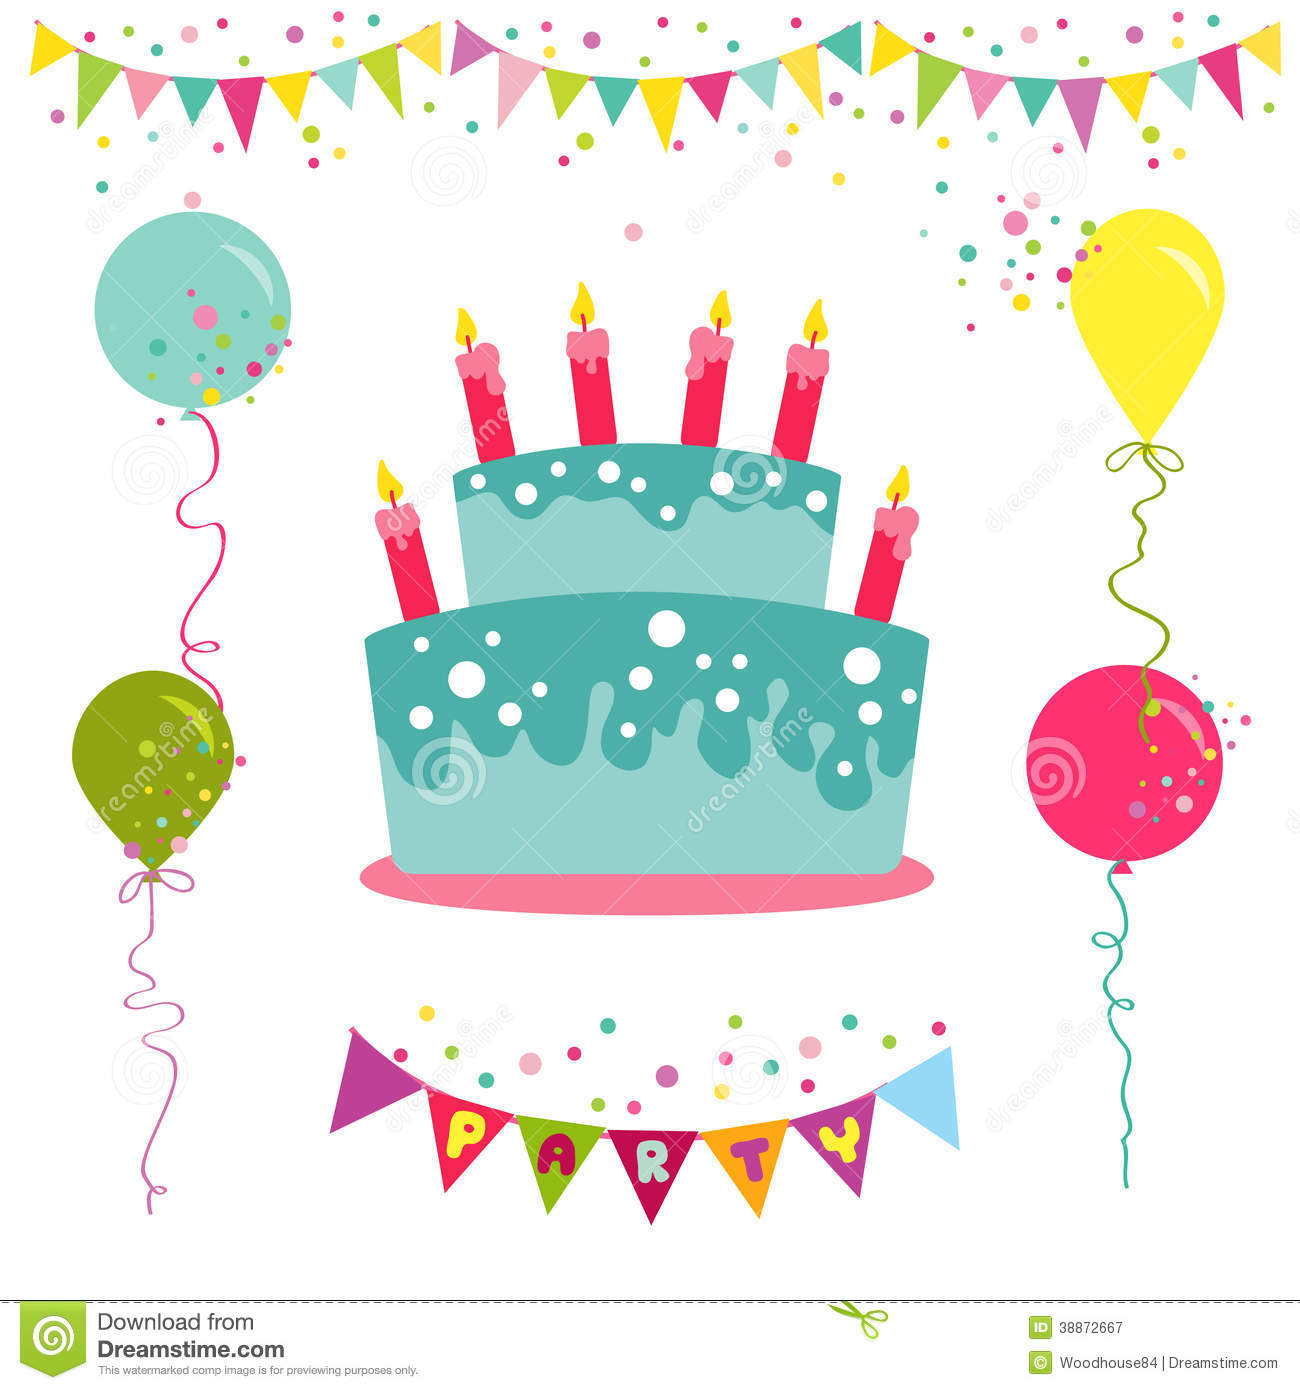 Happy Birthday And Party Invitation Card Stock Vector - Image ...